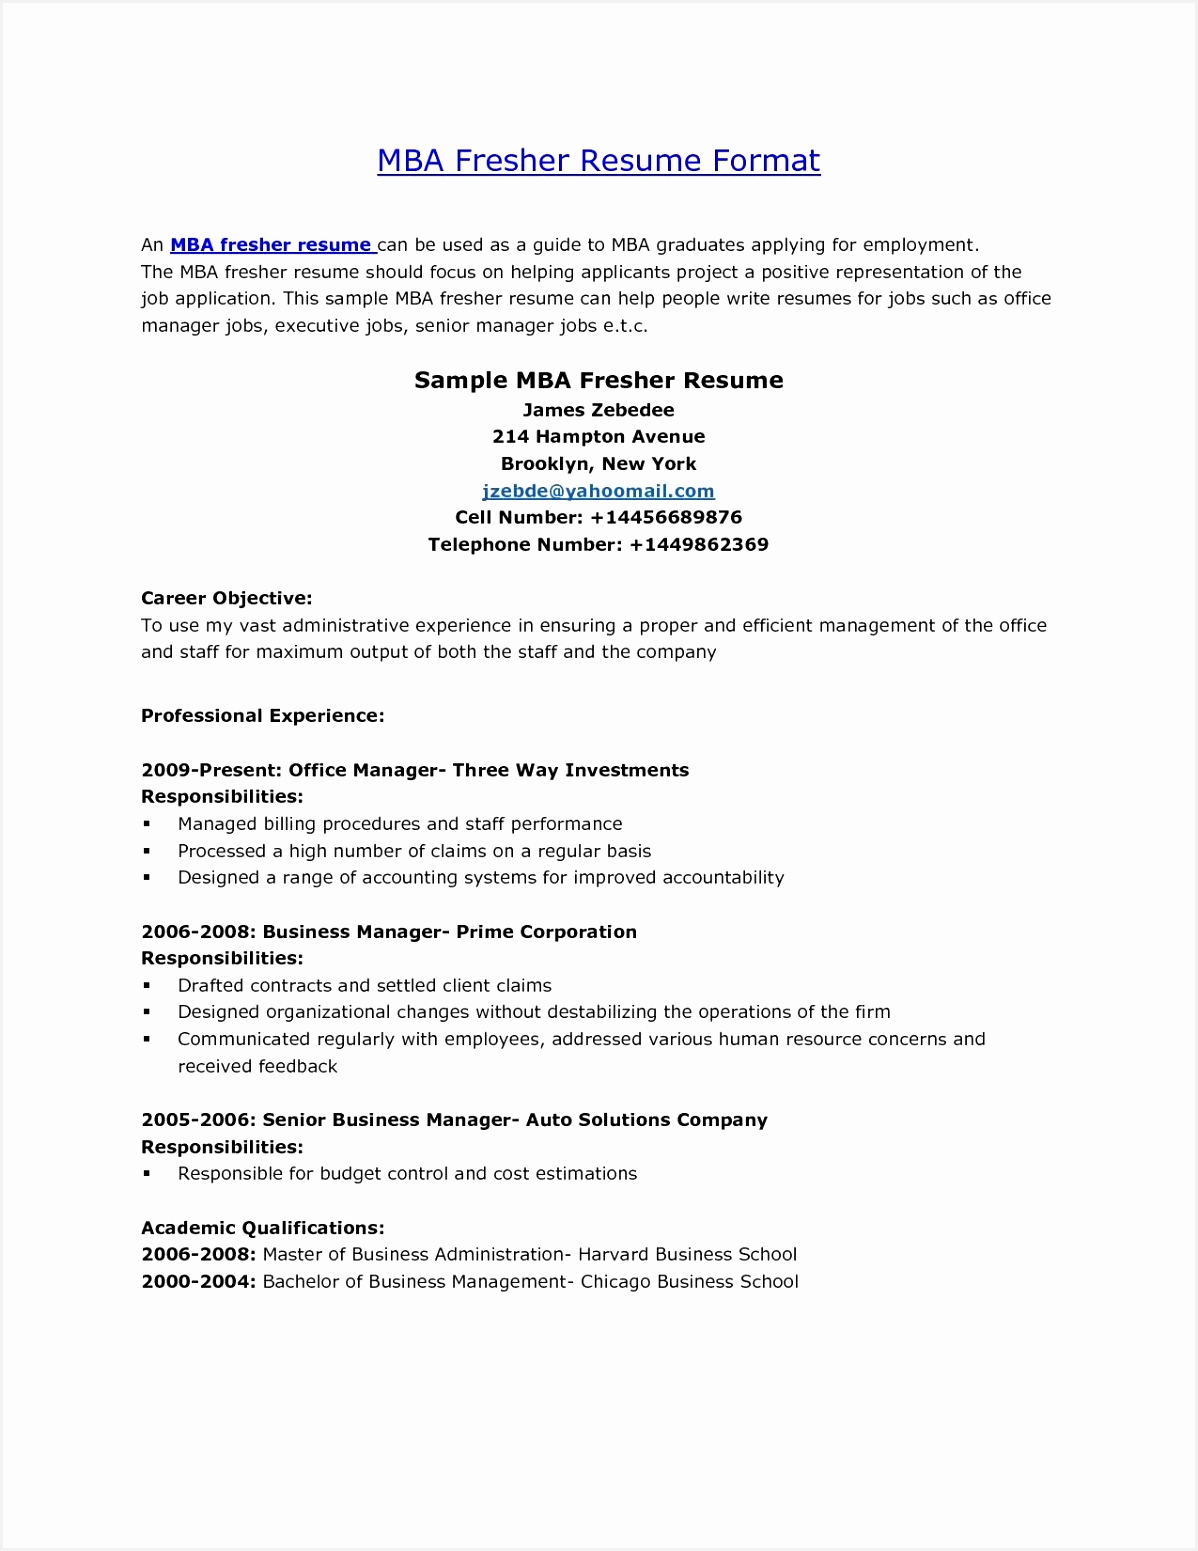 Contract Stress Engineer Sample Resume H7ght Luxury Awesome Resume for Tele Engineer Fresher Resume Ideas Of Contract Stress Engineer Sample Resume Ooj3g Luxury Resume Examples Mechanical Engineer Archives Margorochelle